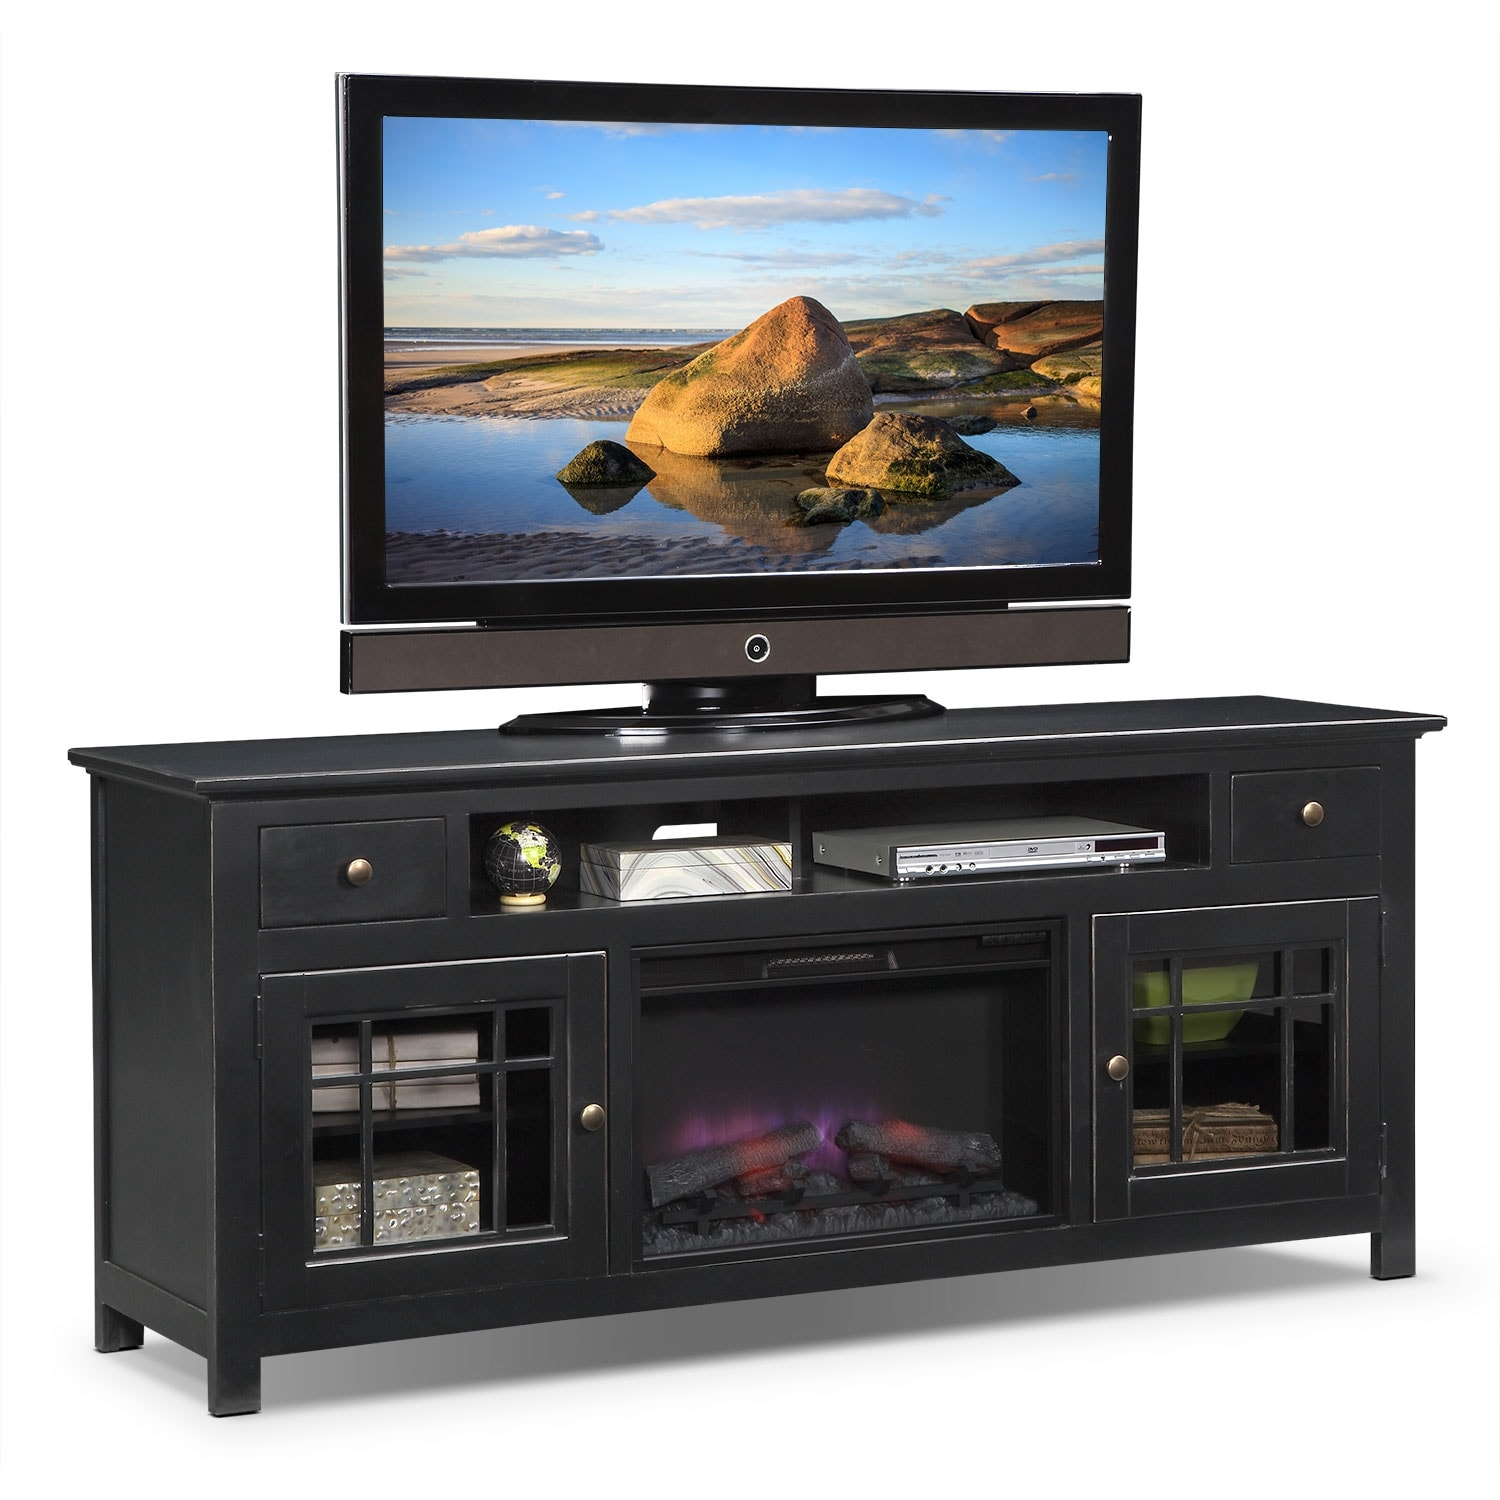 "Merrick Black 74"" Fireplace TV Stand with Traditional Insert"